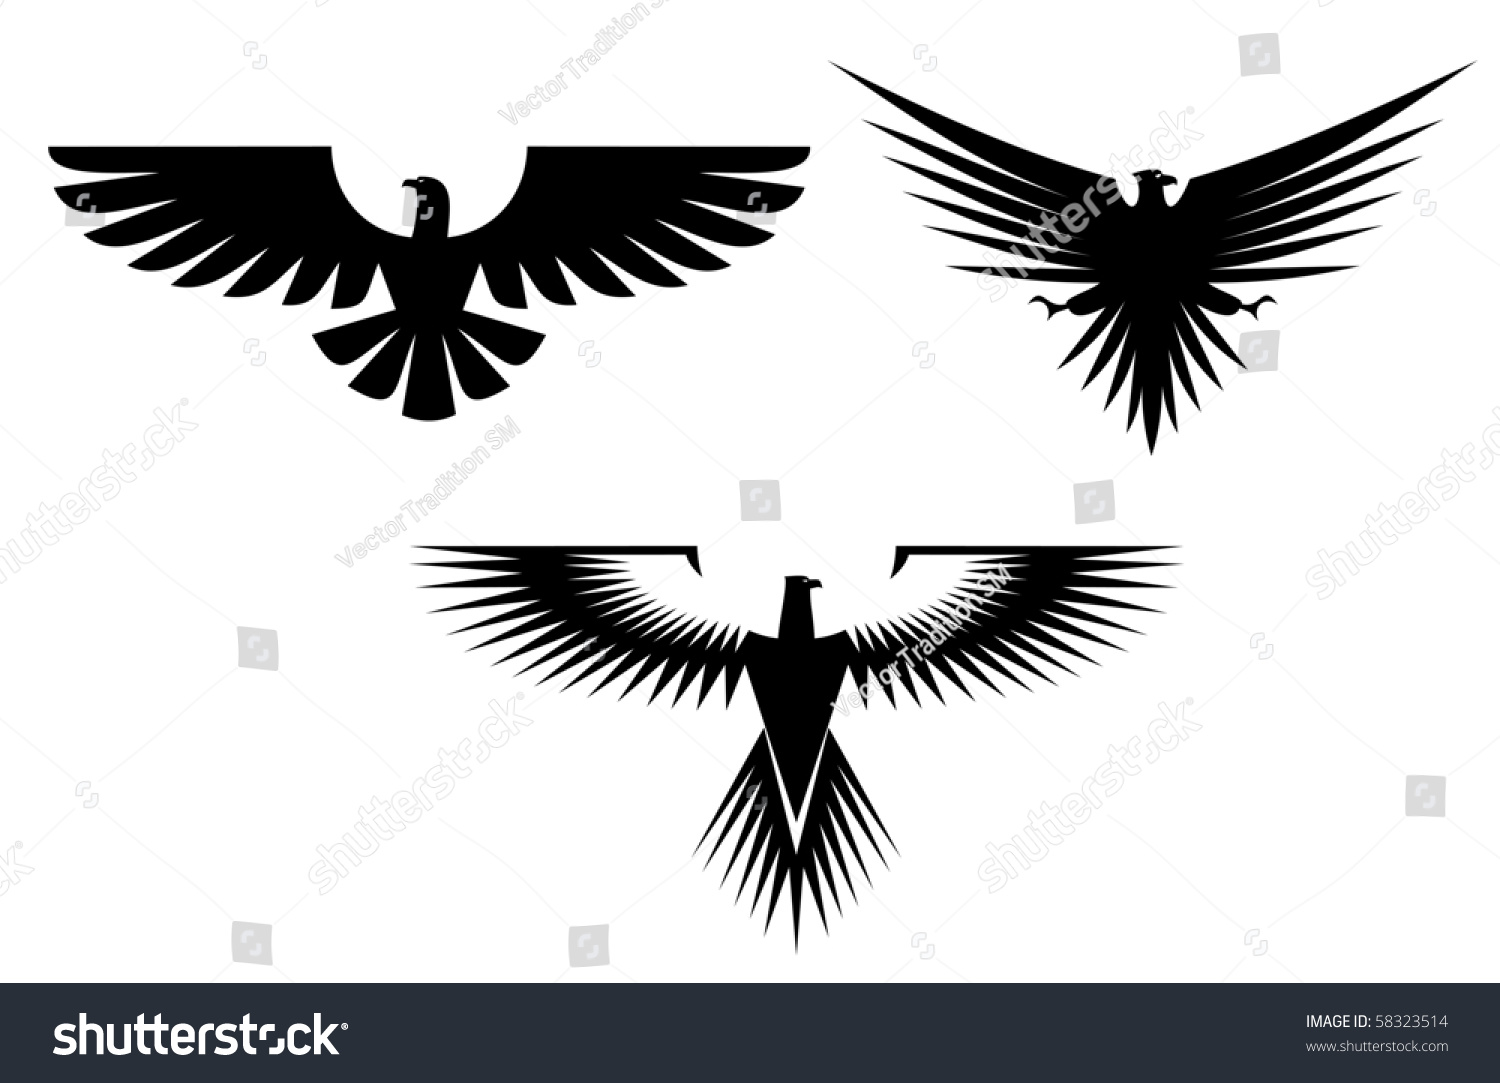 Eagle symbol isolated on white emblem stock illustration 58323514 eagle symbol isolated on white also as emblem such a logo vector version biocorpaavc Gallery